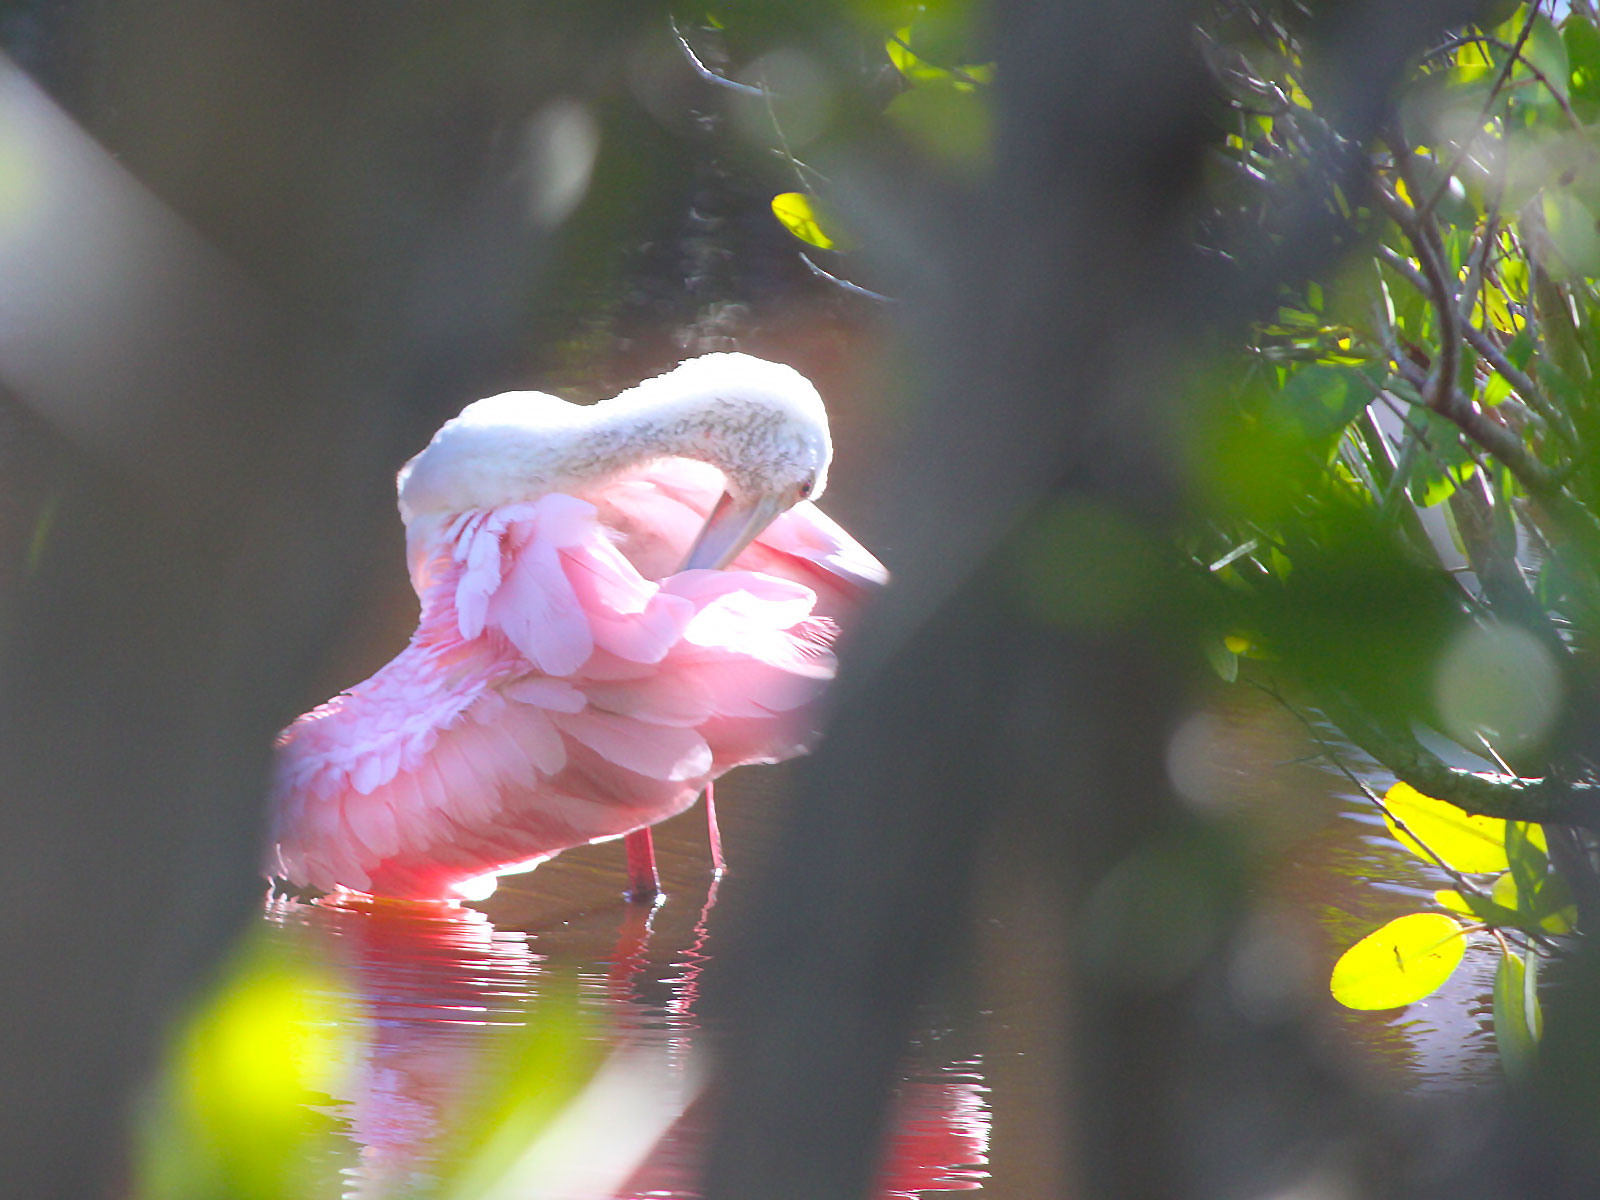 Roseate spoonbill fluffing feathers at J. N. Ding Darling National Wildlife Rufuge, Sanibel Island, FL